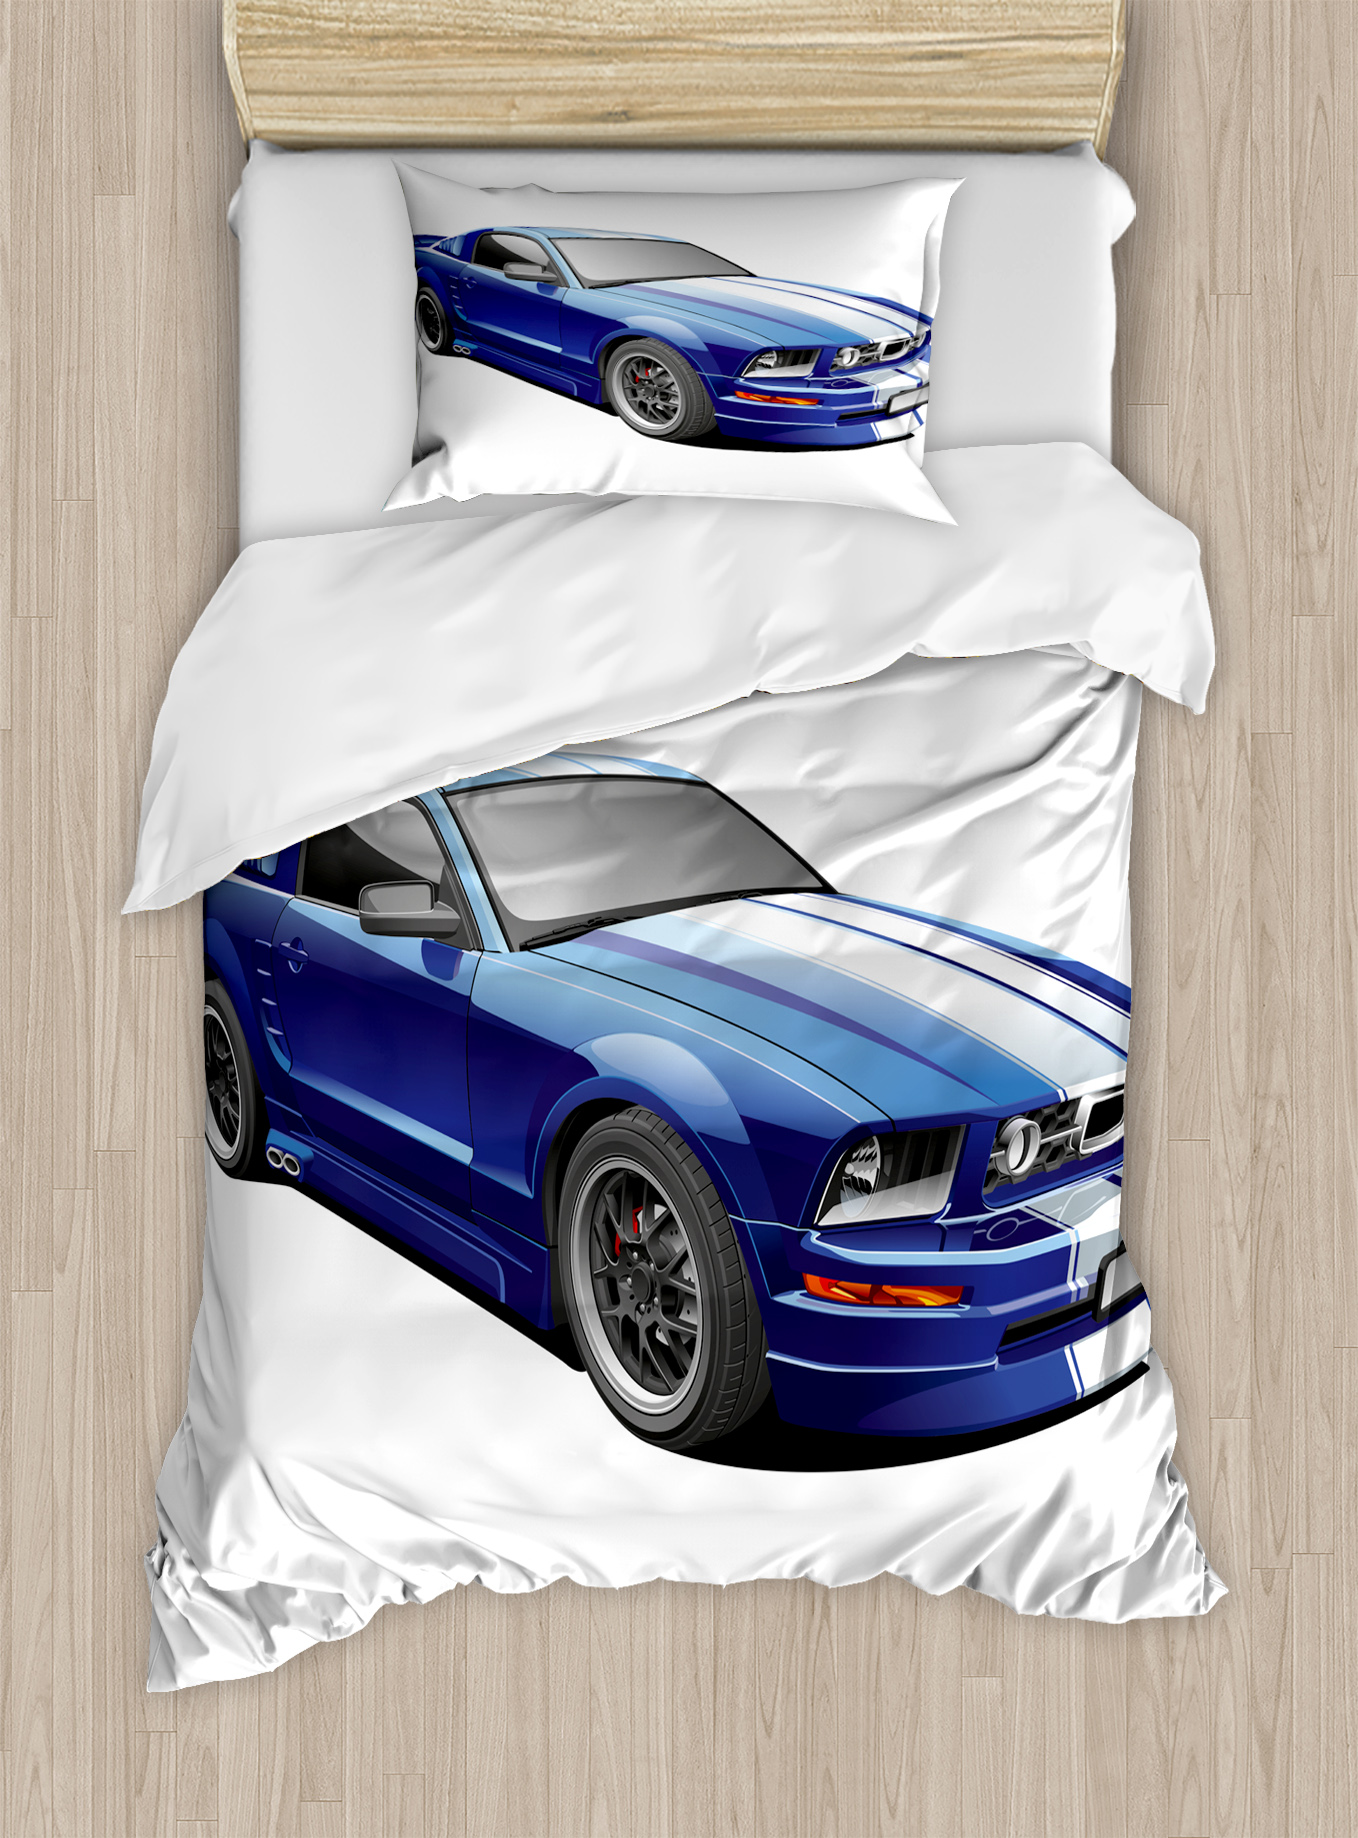 Teen Room Decor Twin Size Duvet Cover Set, American Auto Racing Car Sports Competition... by Kozmos